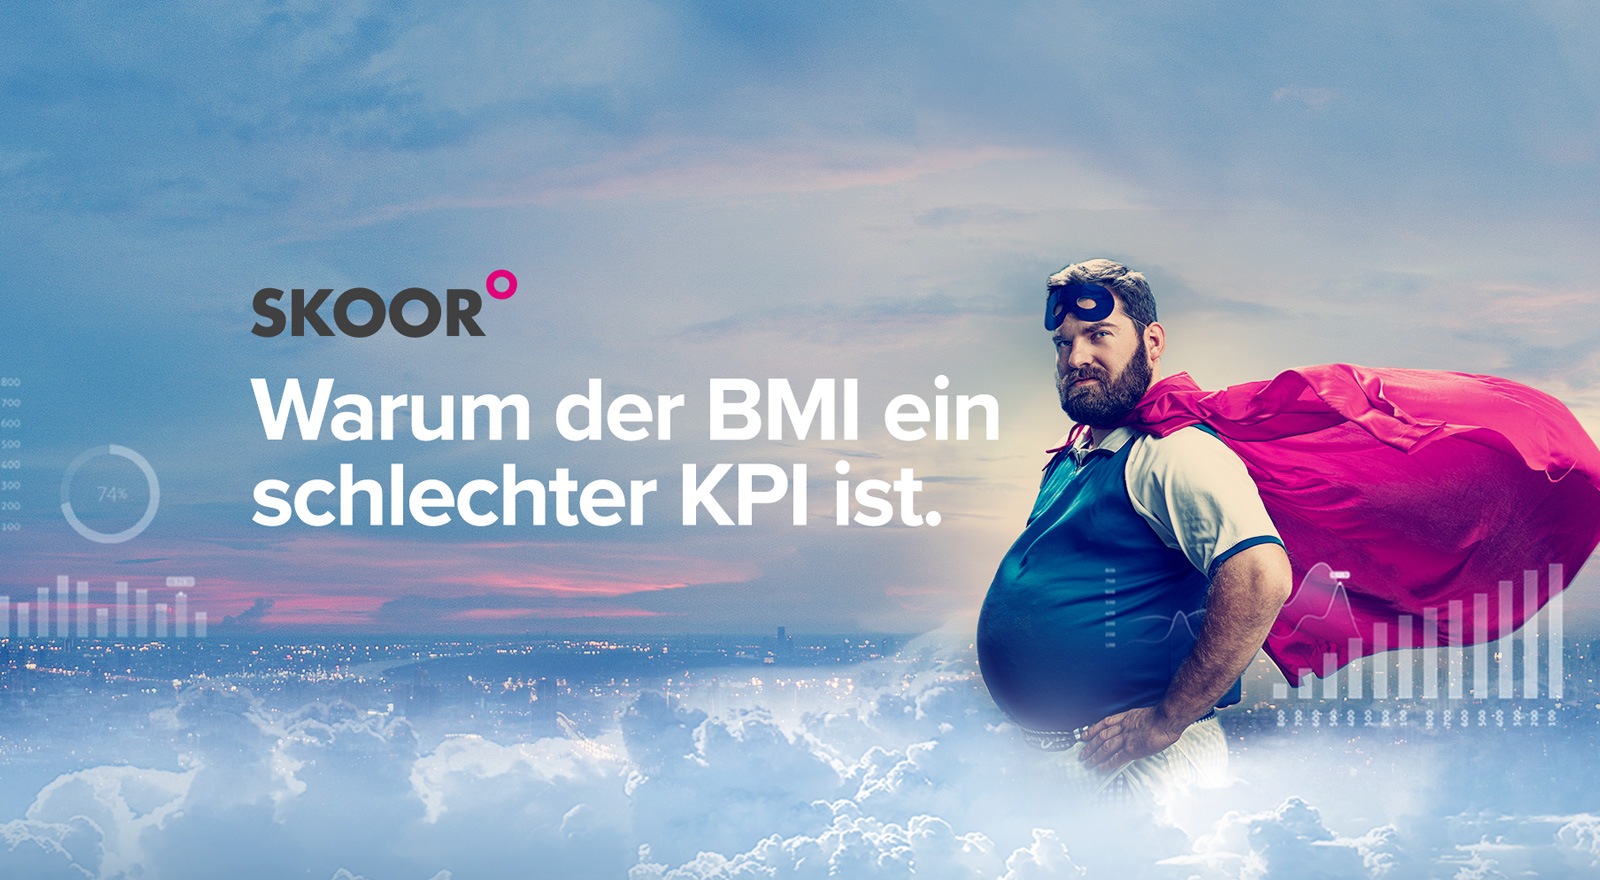 marketing kampagne